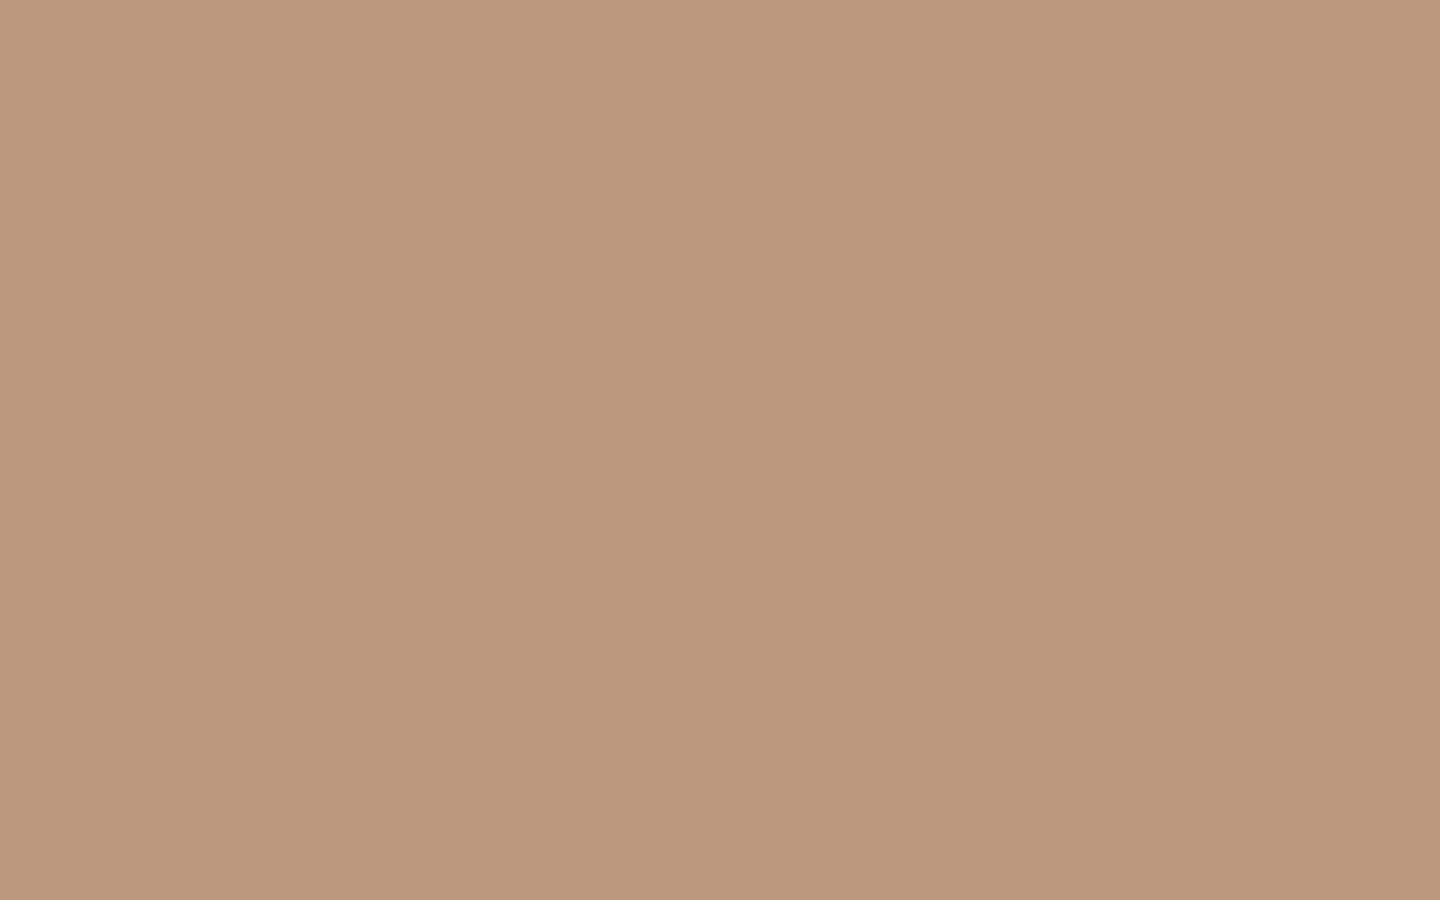 1440x900 Pale Taupe Solid Color Background